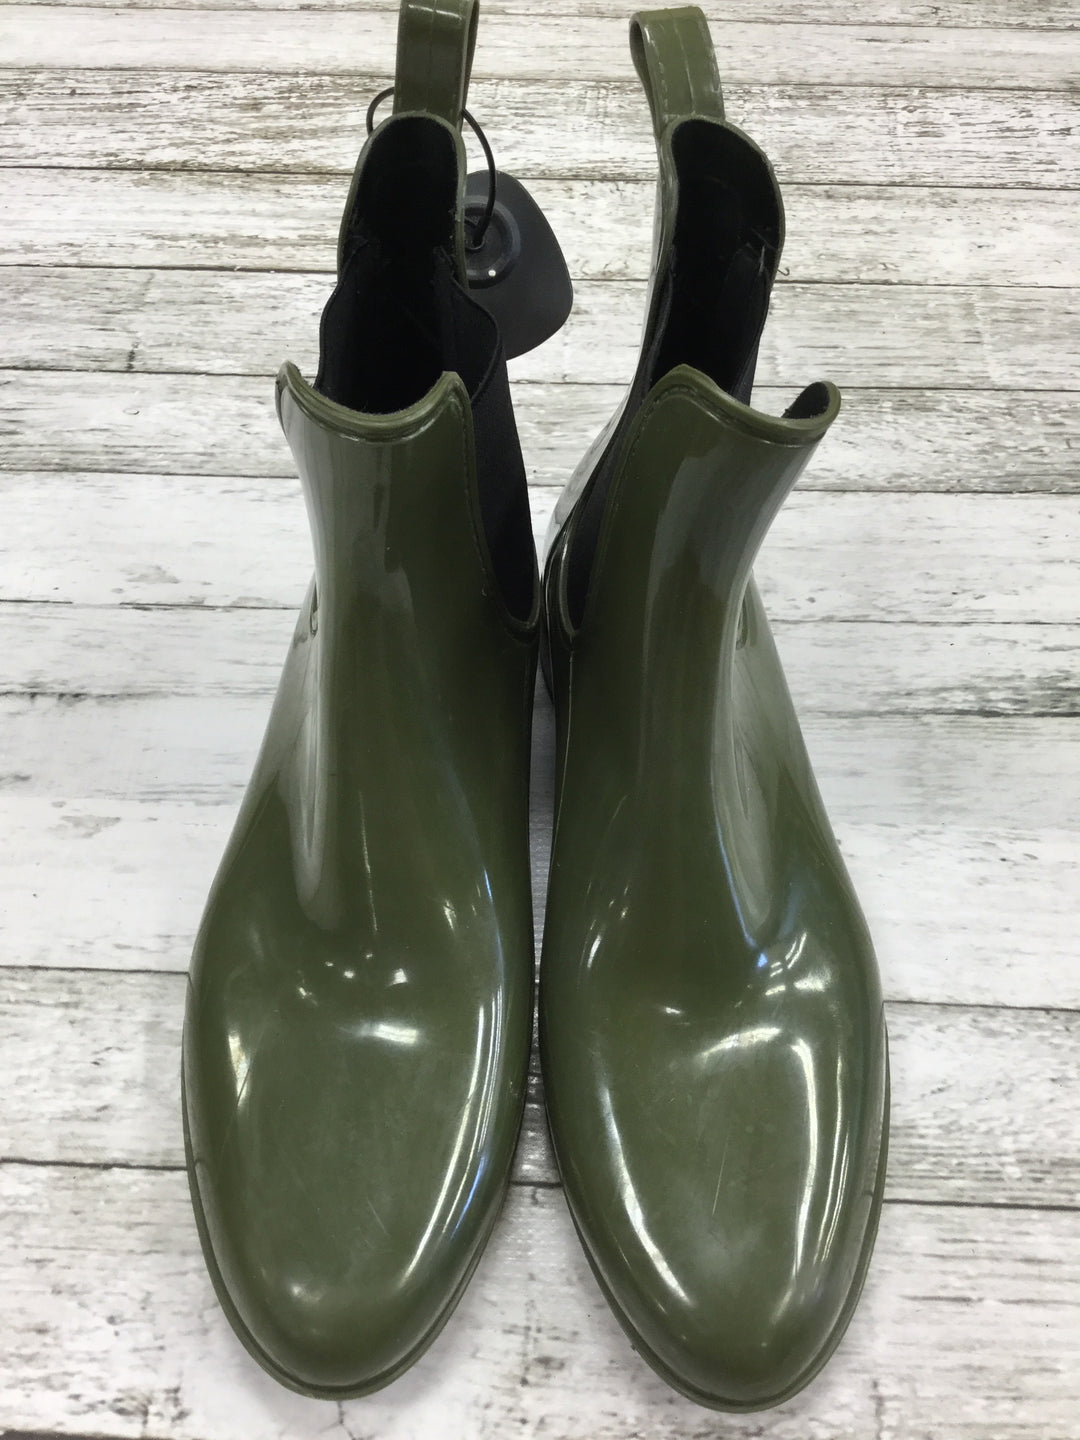 Primary Photo - BRAND: J CREW , STYLE: BOOTS ANKLE , COLOR: GREEN , SIZE: 10 , OTHER INFO: RAIN , SKU: 127-4942-1222